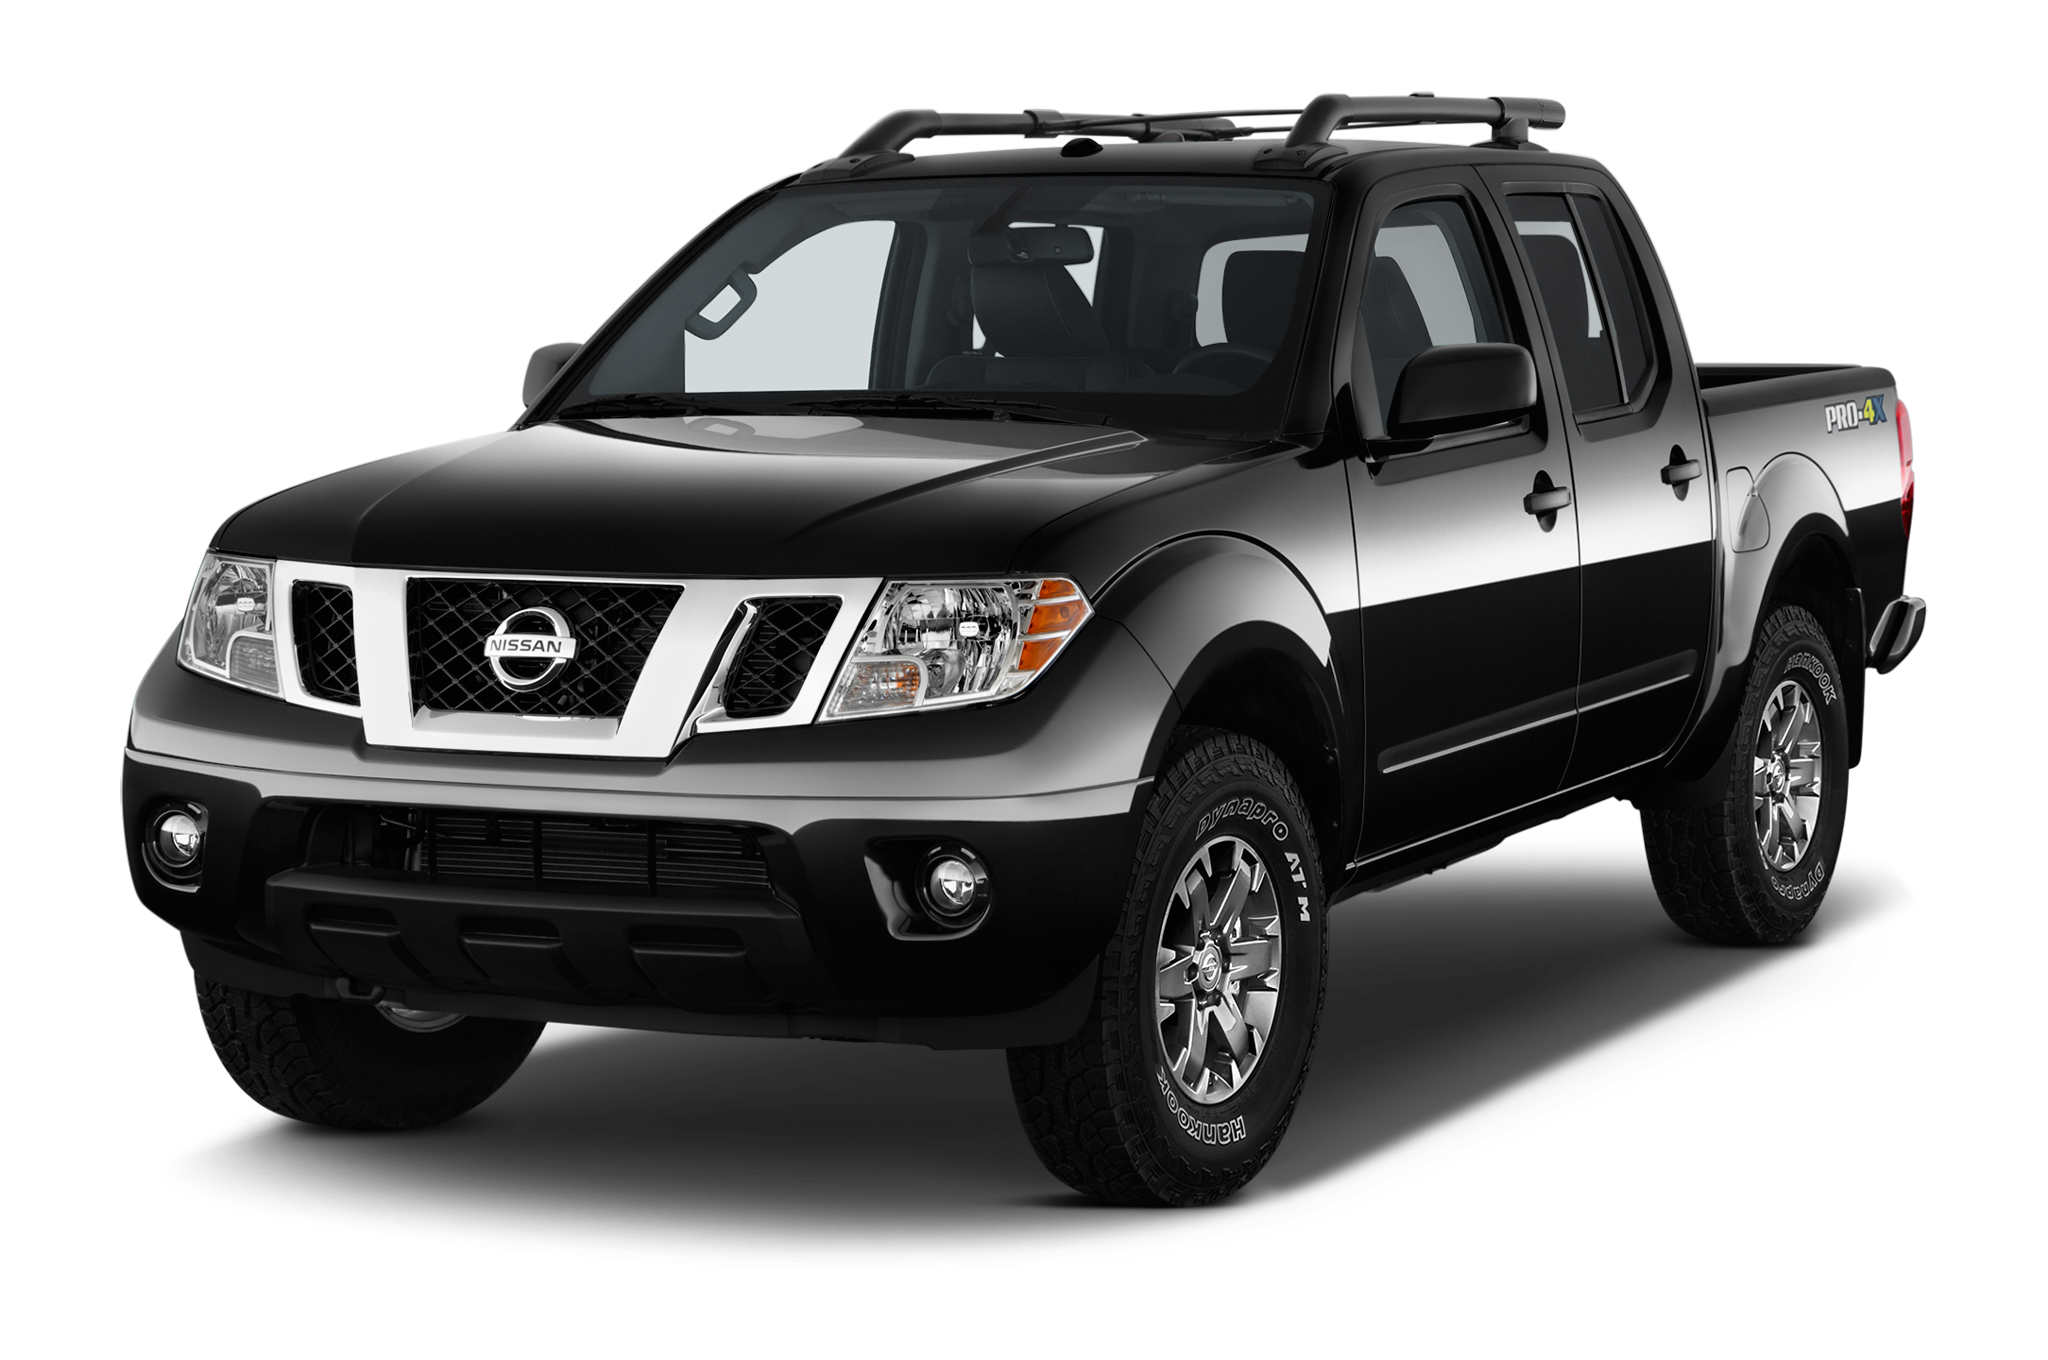 nissan frontier review automobile magazine. Black Bedroom Furniture Sets. Home Design Ideas